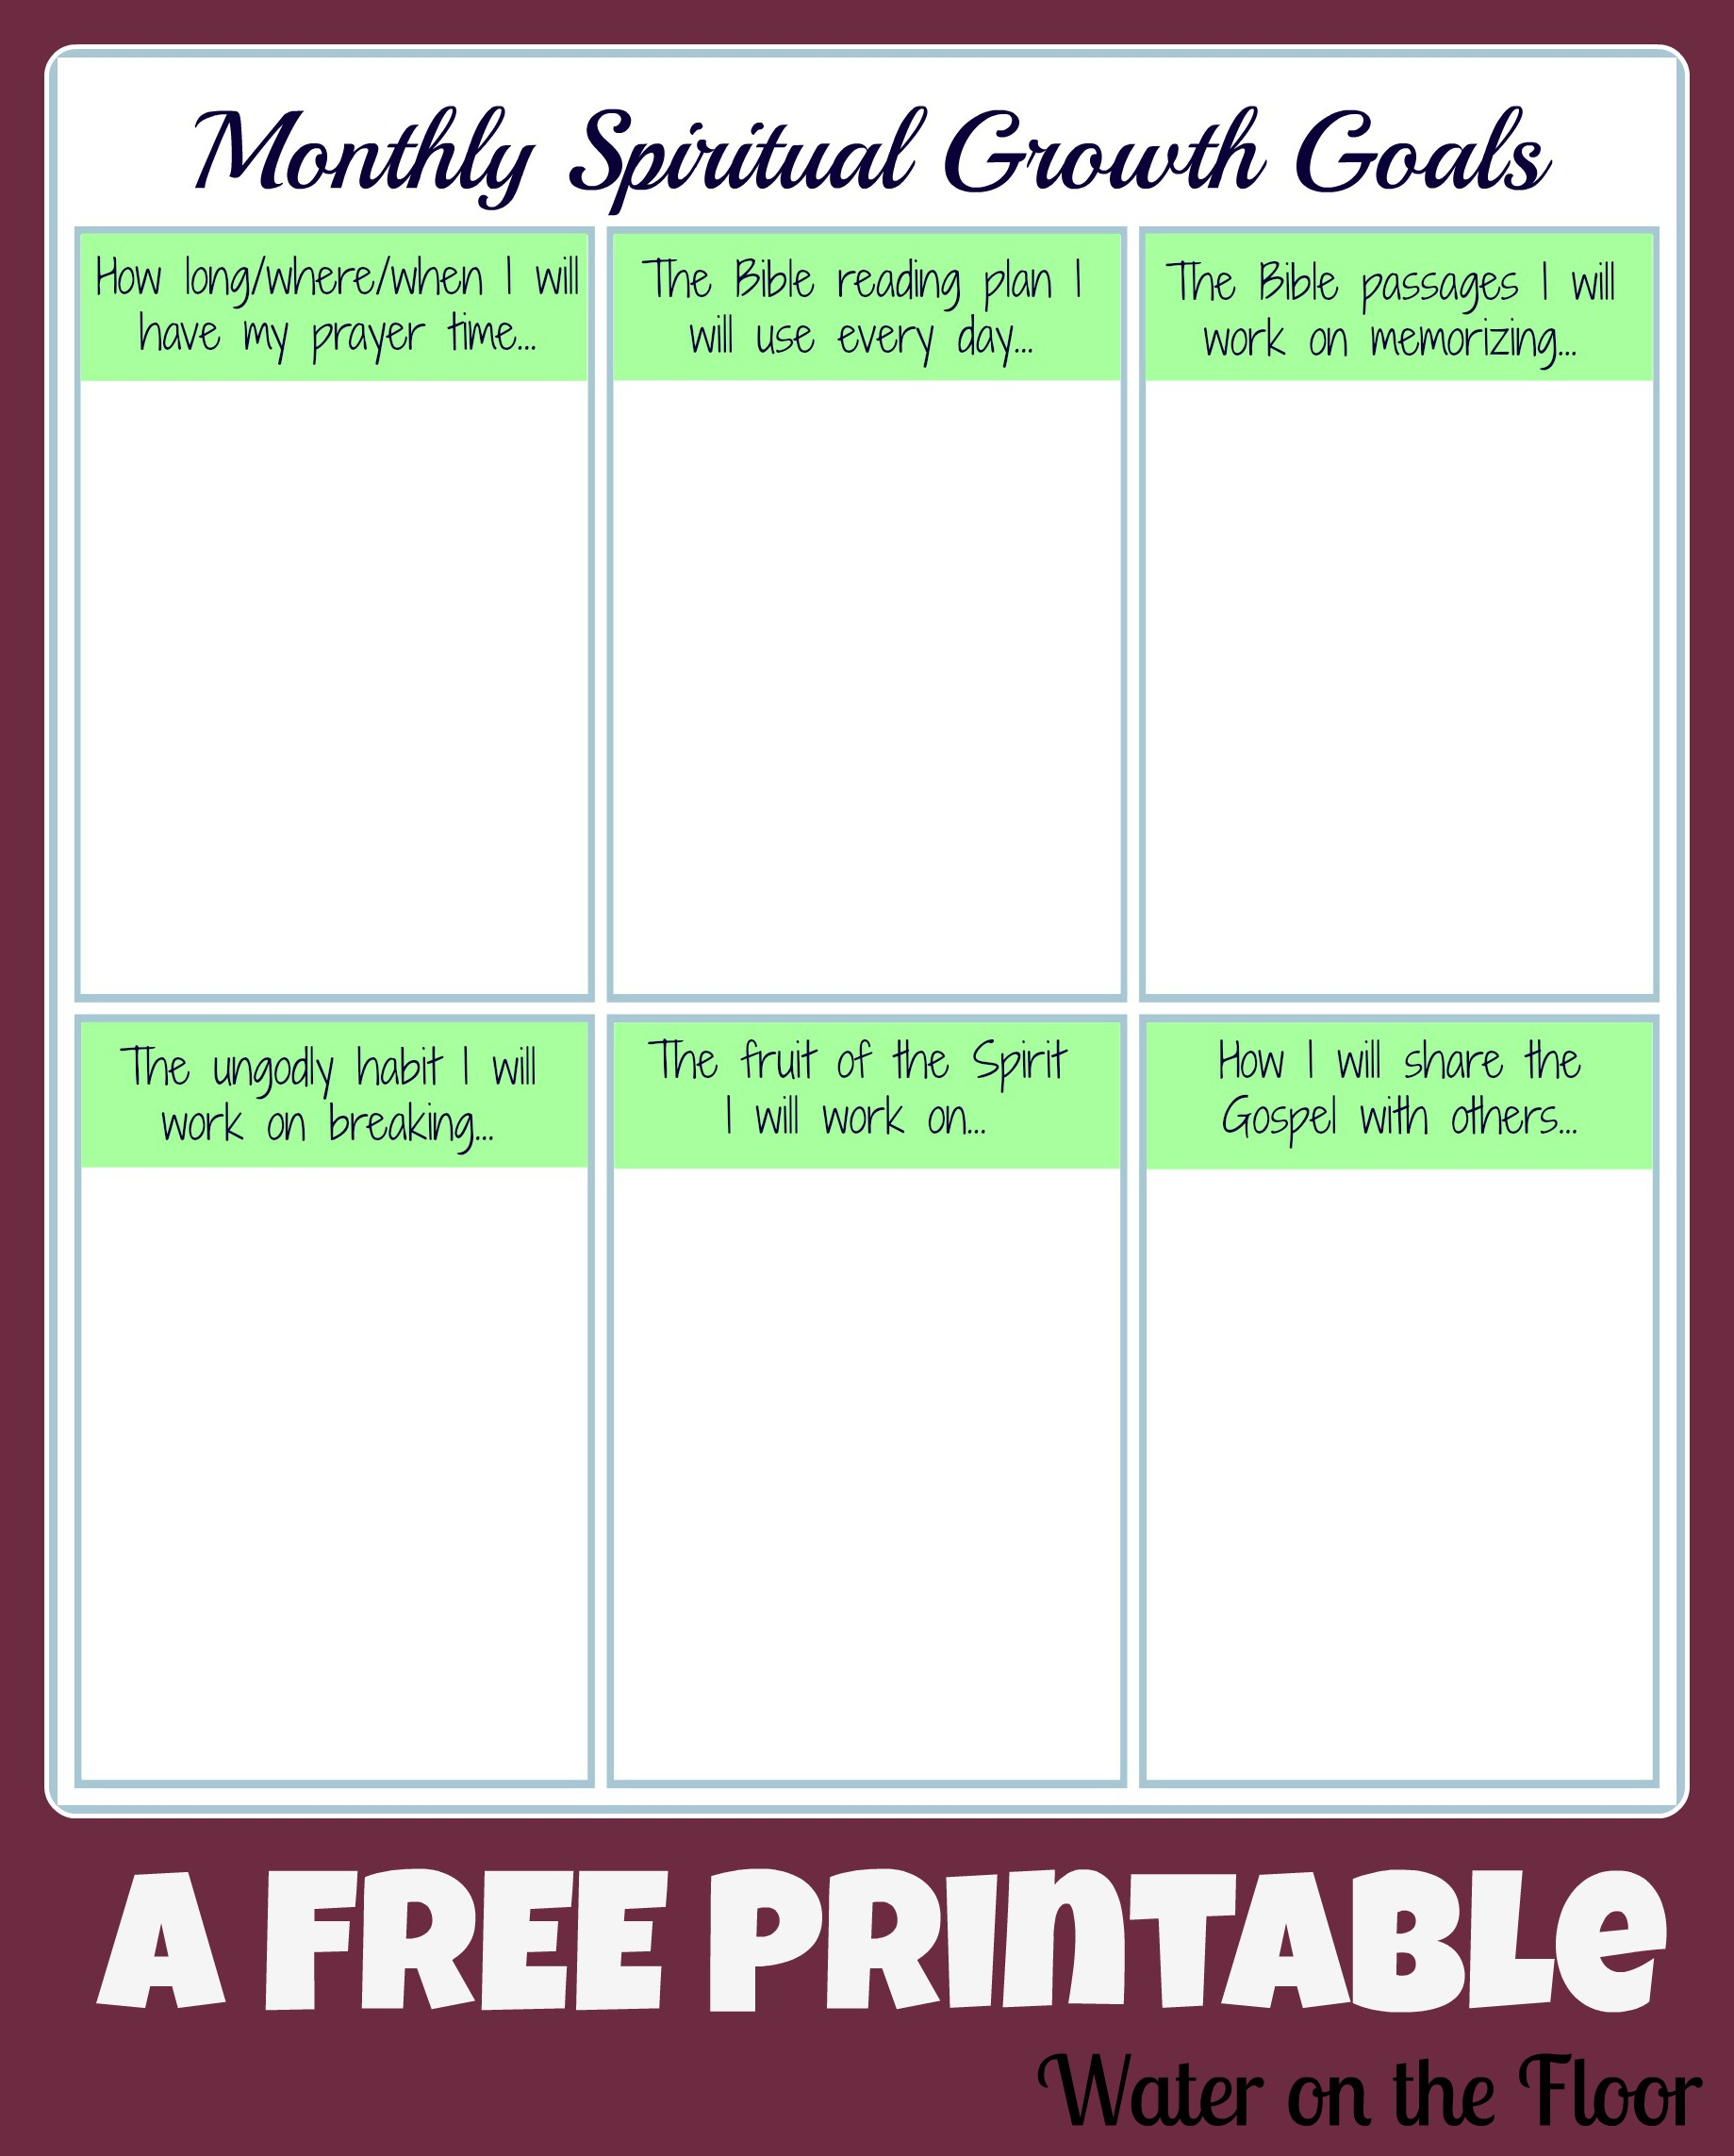 Monthly Spiritual Growth Goals Free Printable